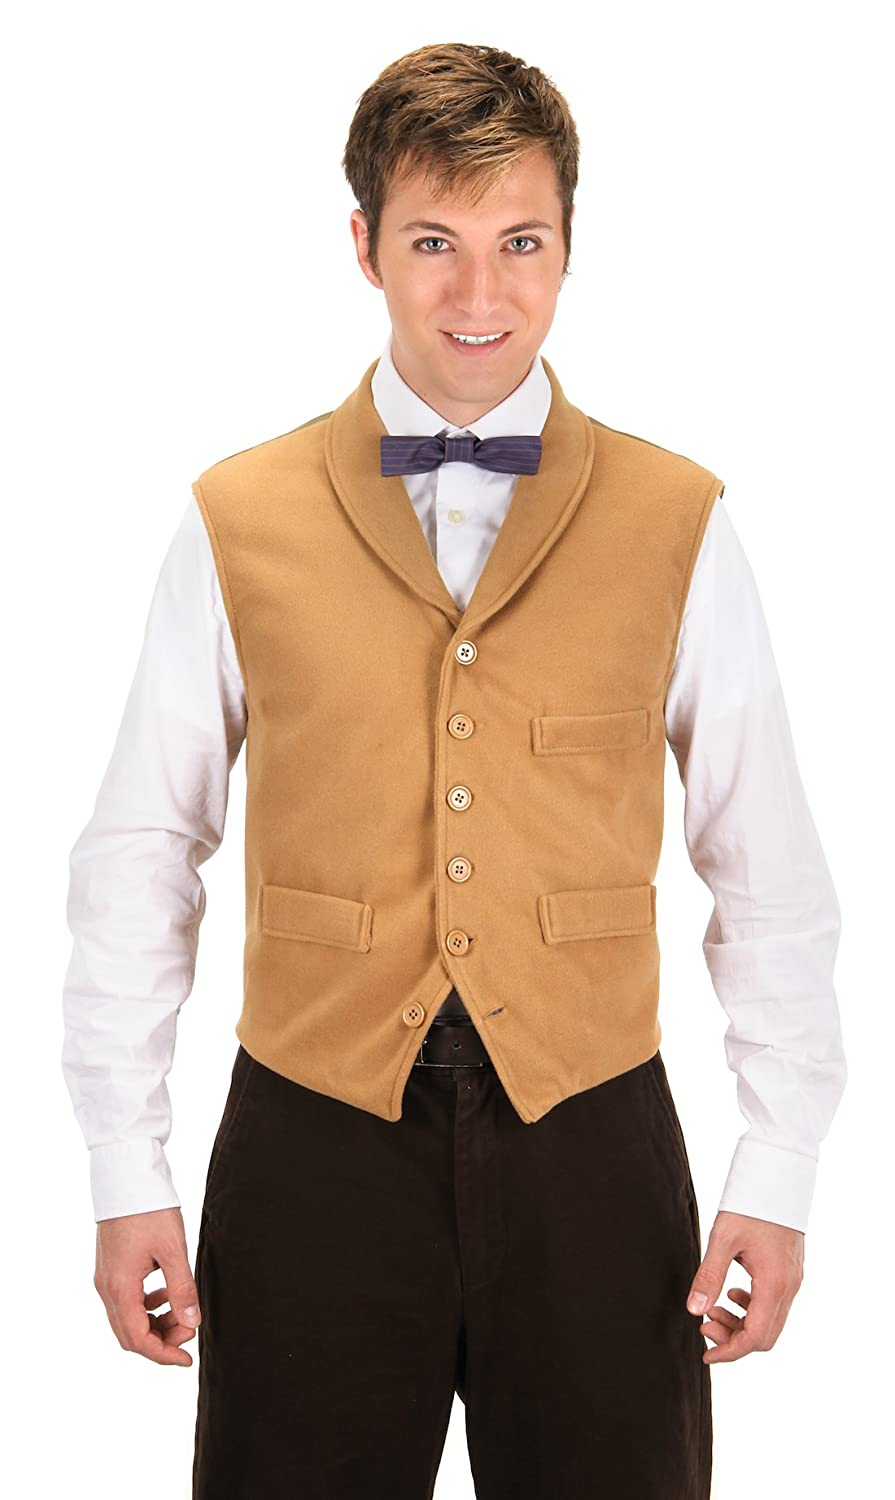 Men's Vintage Christmas Gift Ideas elope Fantastic Beasts and Where to FIND Them Newt Scamander Costume Vest for Adults Men $34.60 AT vintagedancer.com